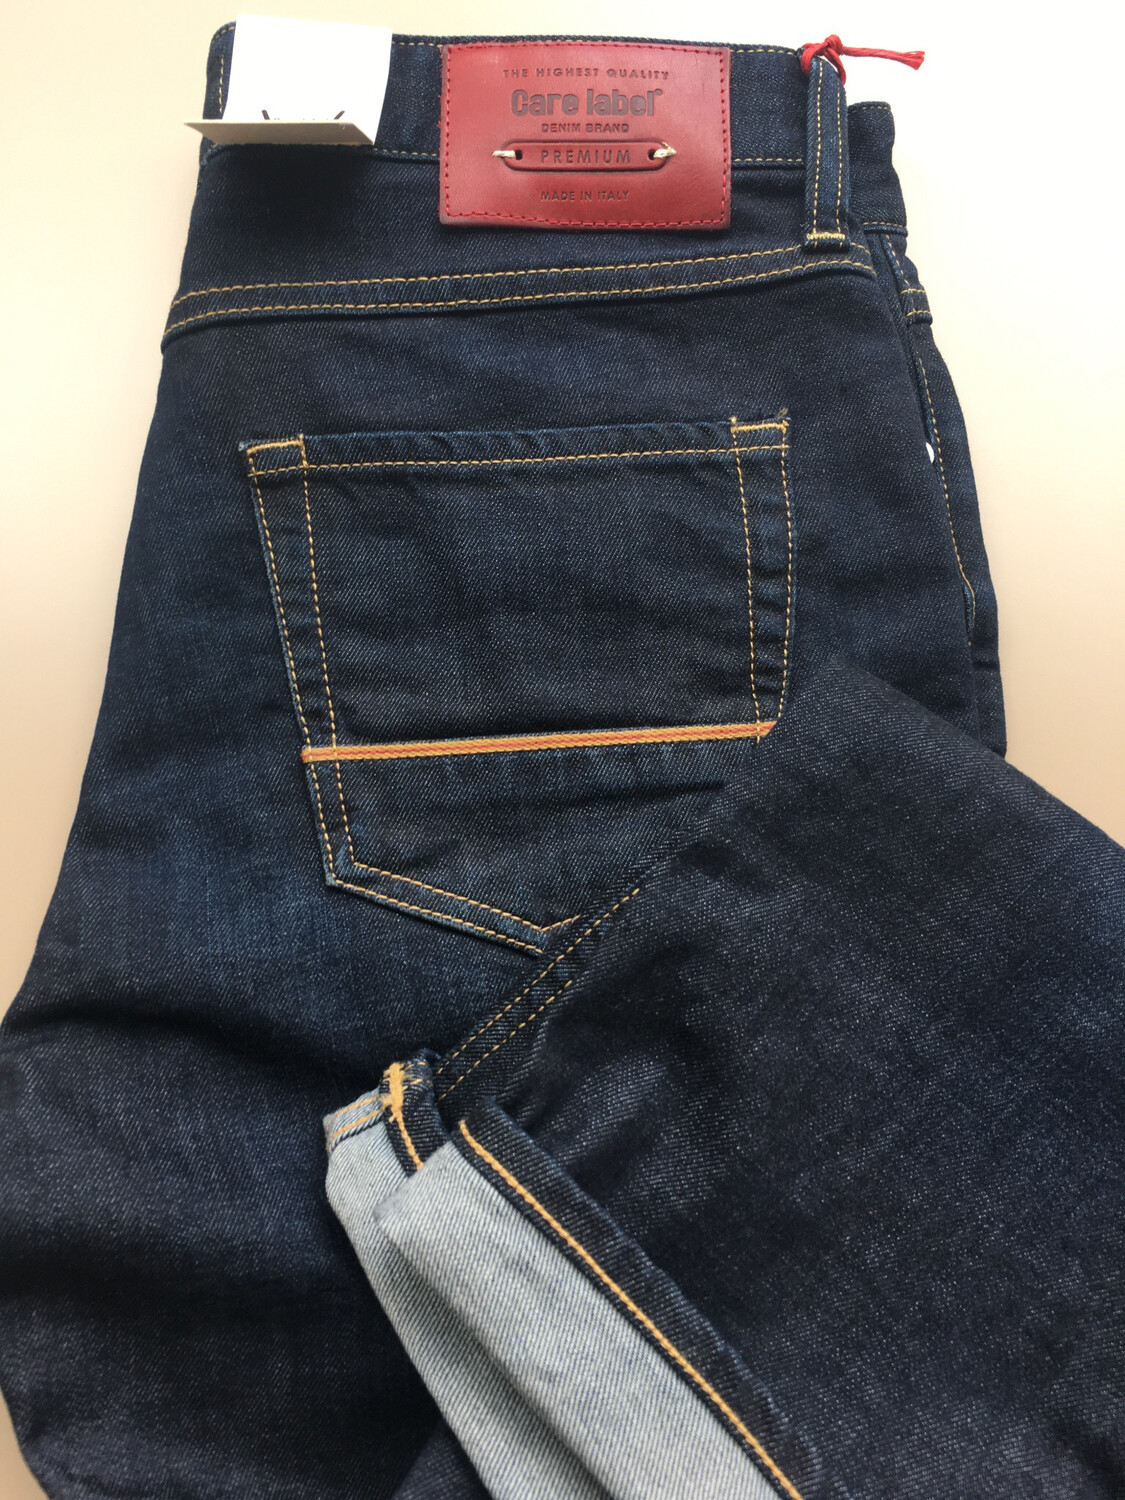 Care Label Jeans Luke